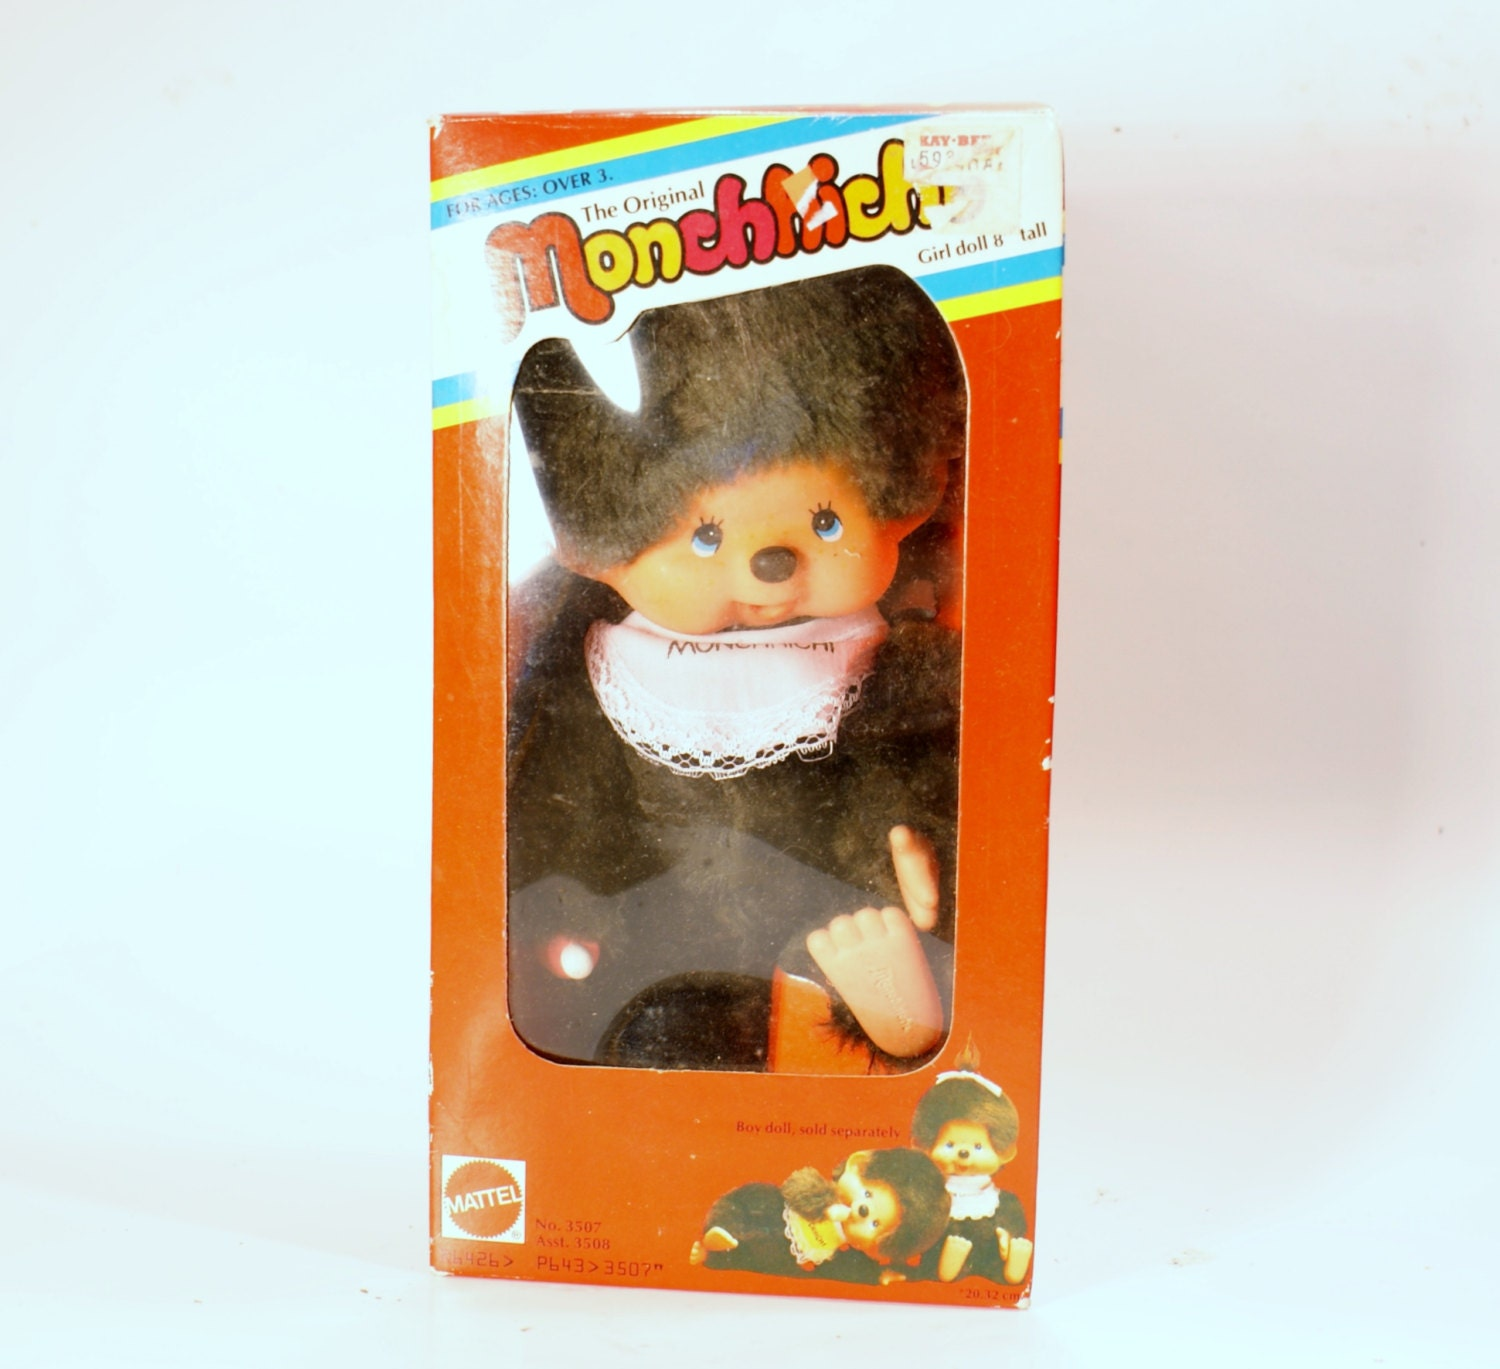 Toys From The 1980s : Vintage toy monchhichi doll mattel s in box